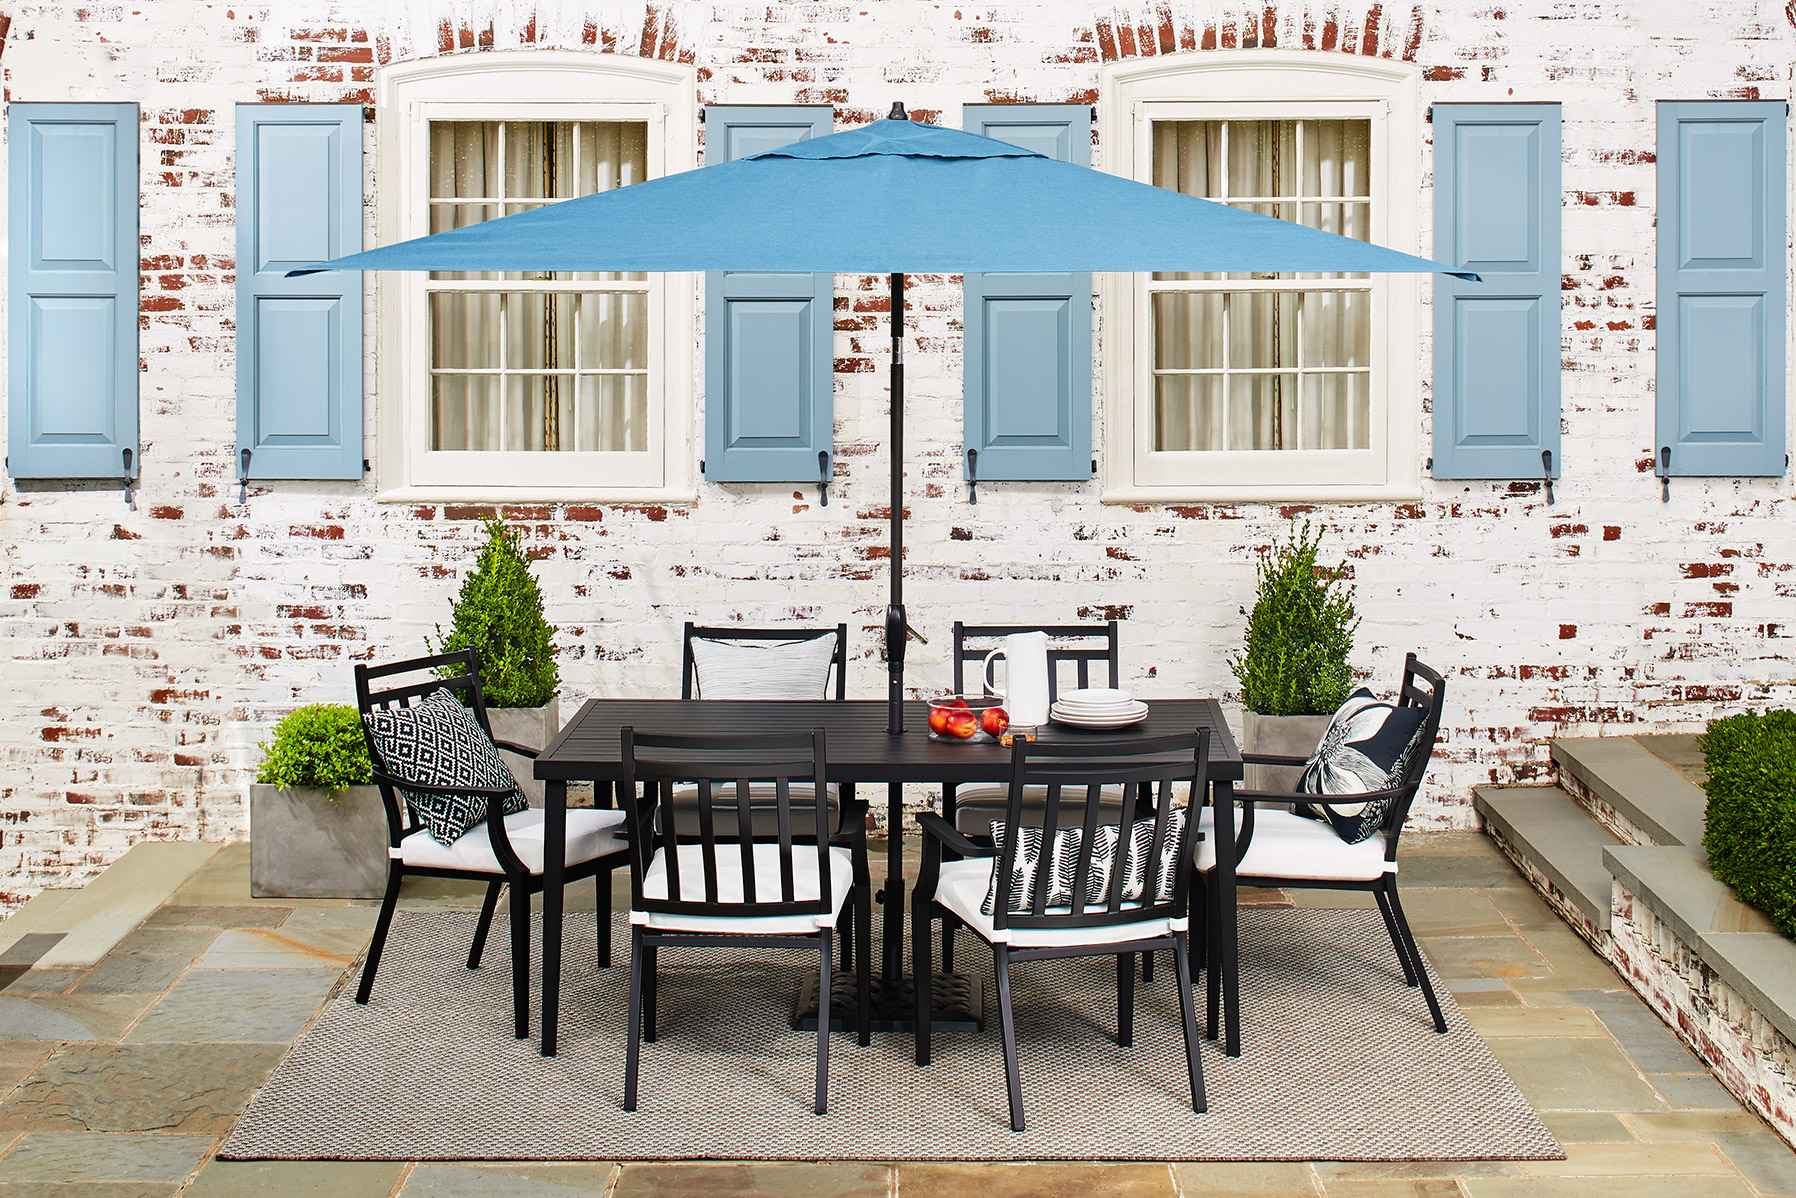 concept of umbrella walmart exterior wicker on house target furniture patio dark outdoor decor popular beige